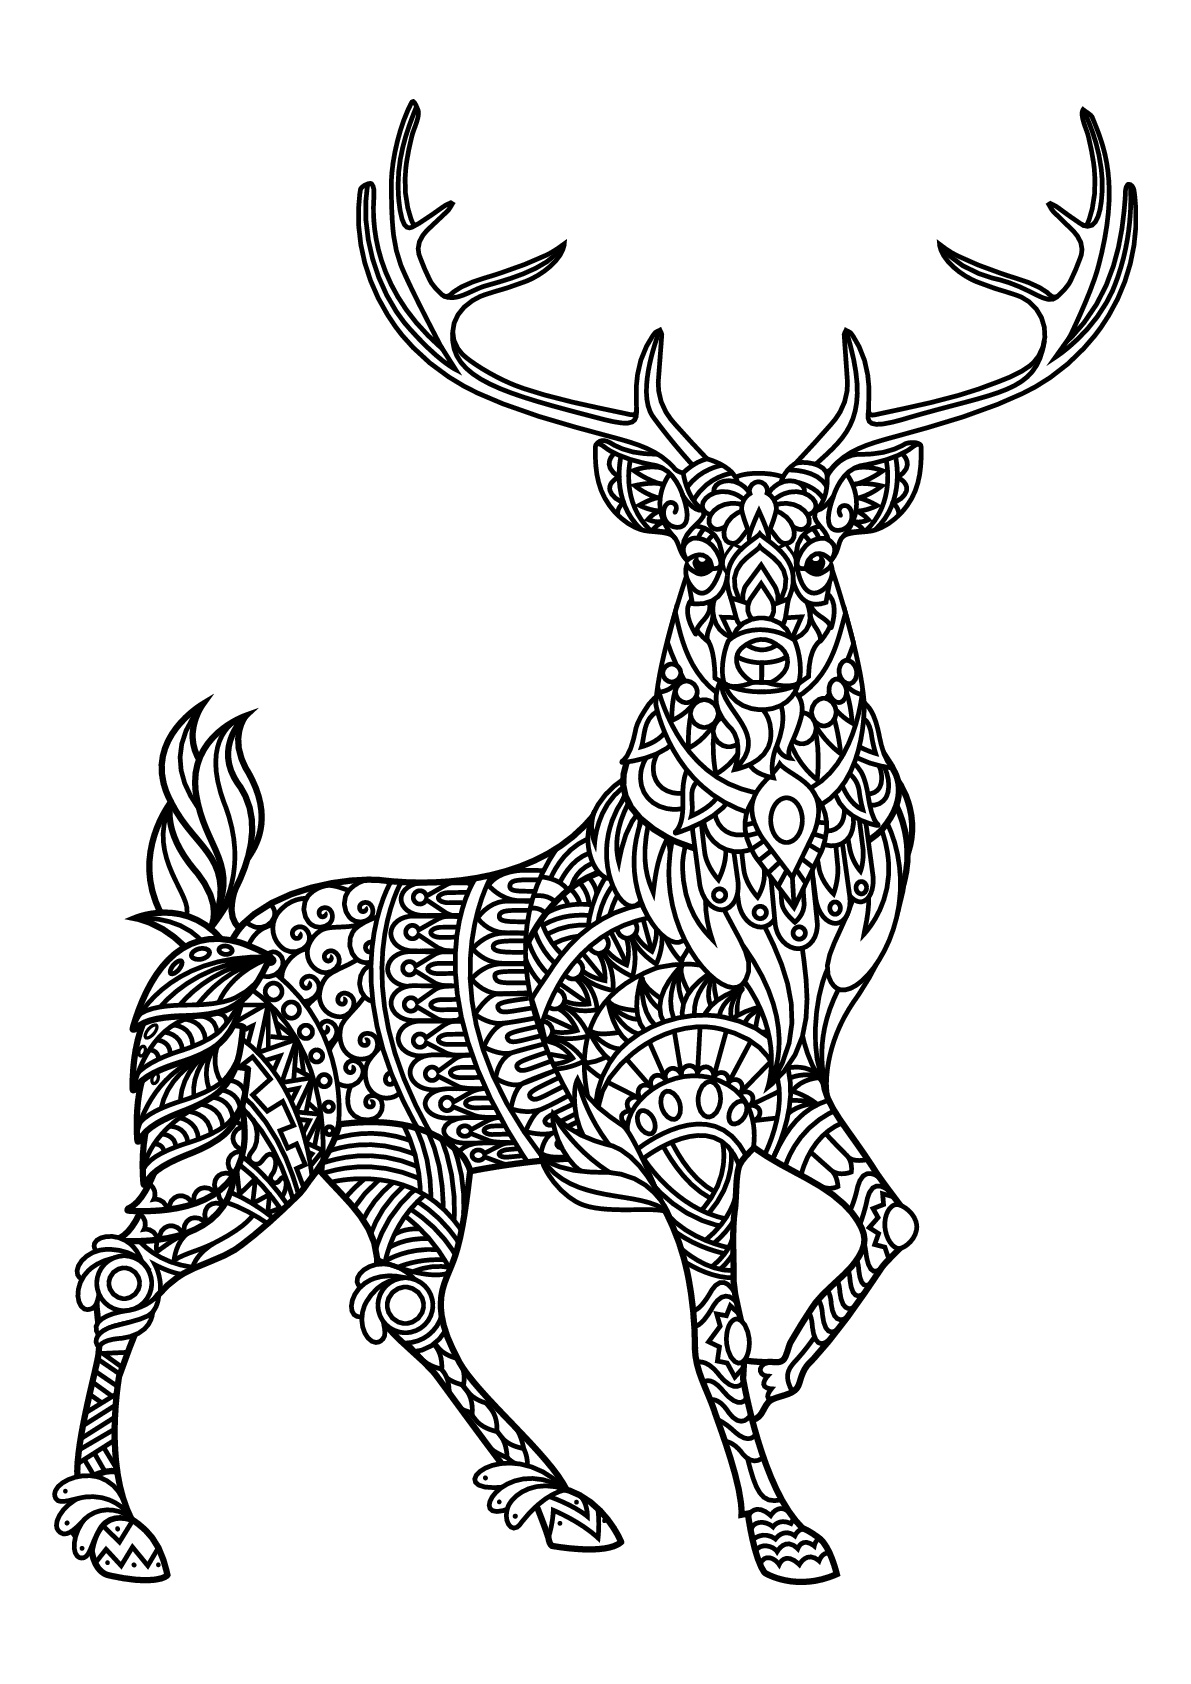 christmas coloring sheets | Christmas Deer coloring page | Super ... | 1684x1191